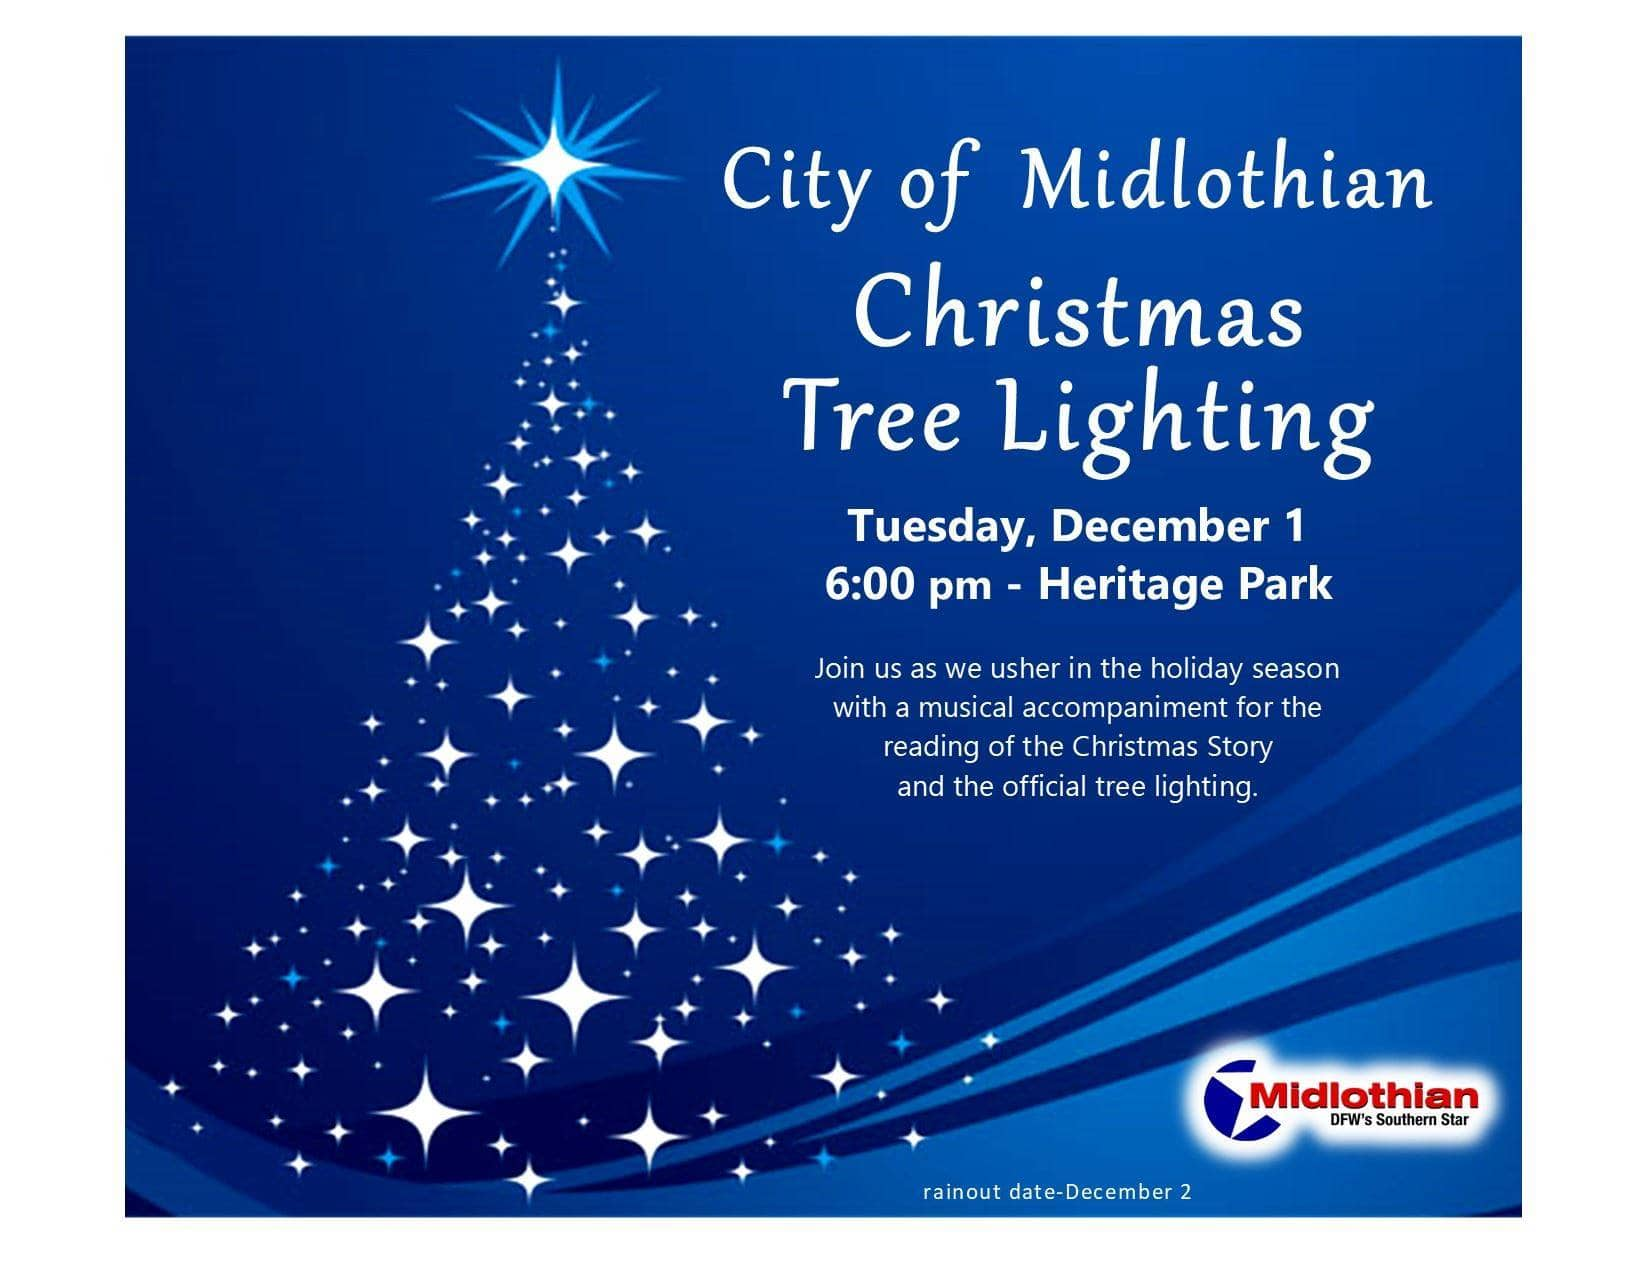 Midlothian Tree Lighting flyer